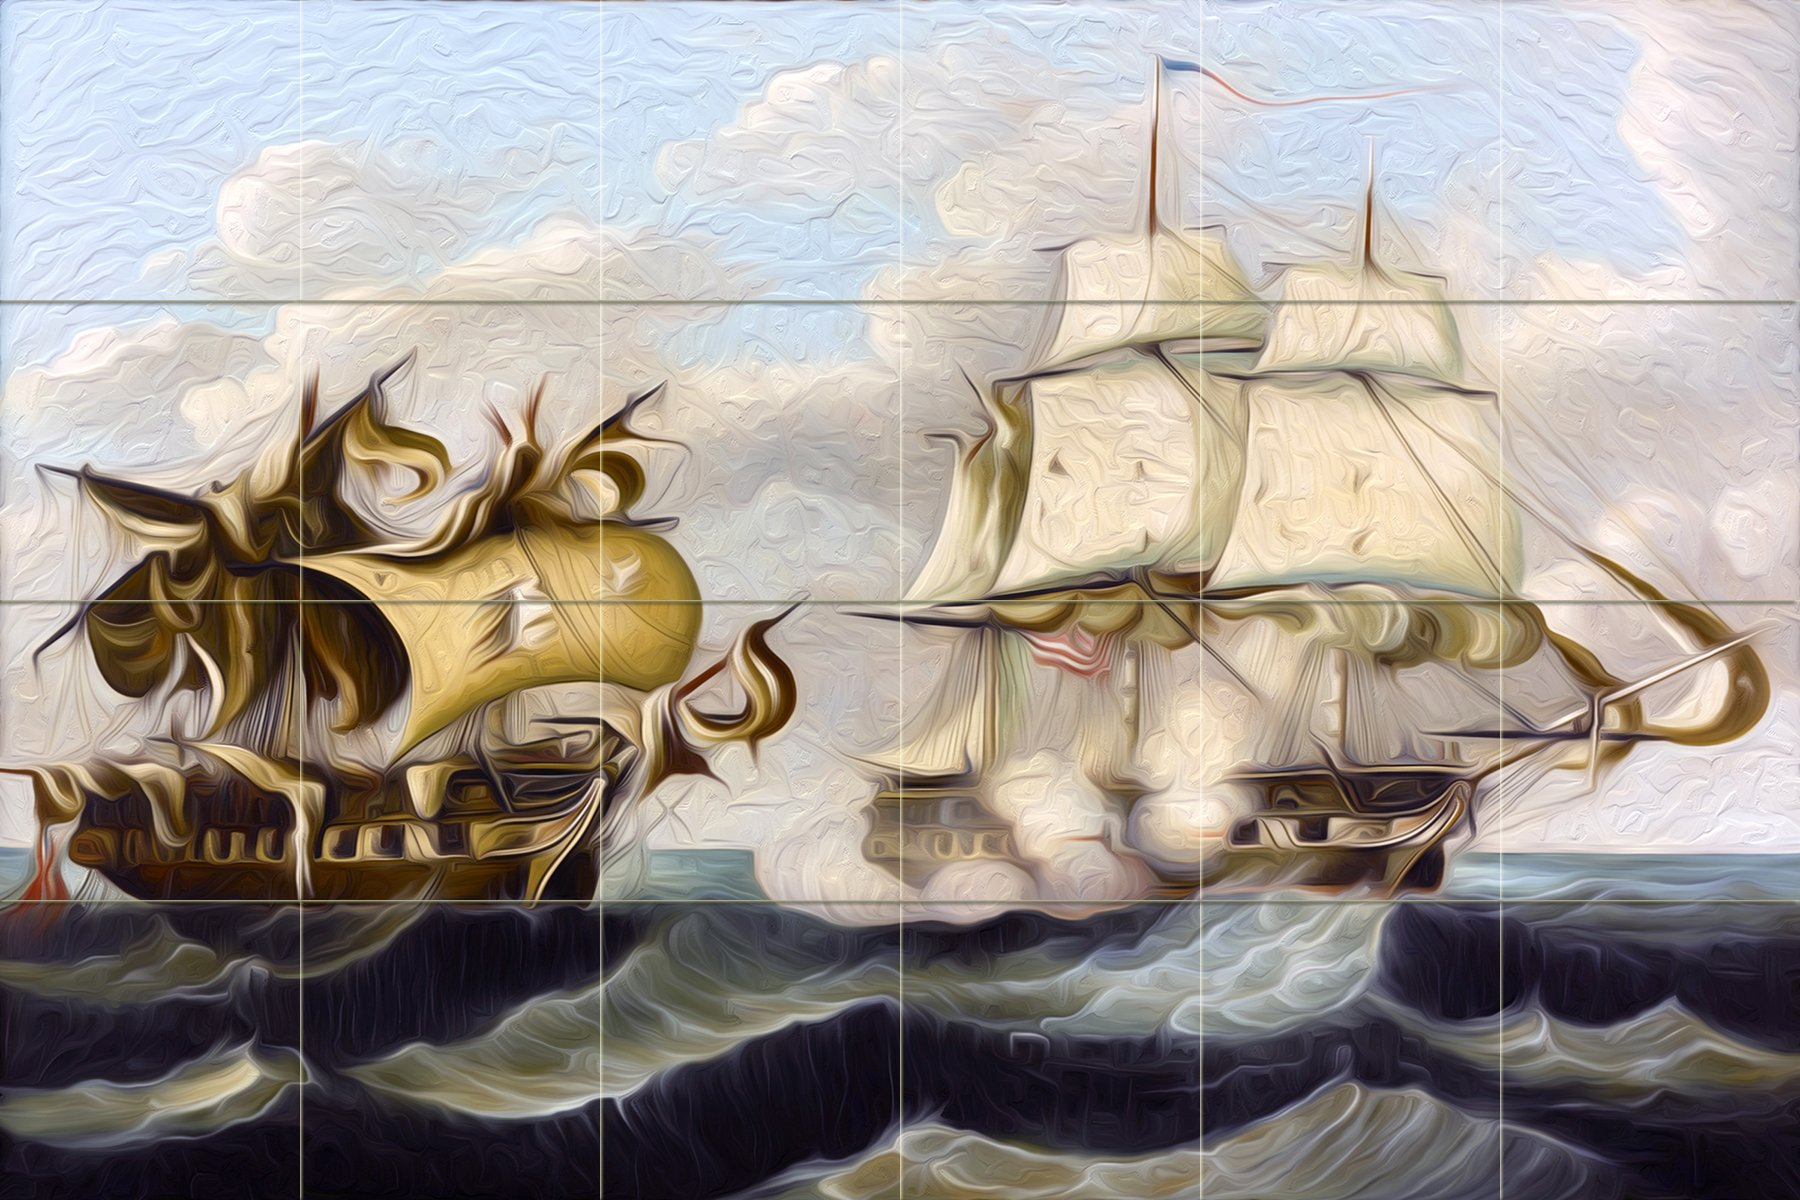 CAPTURE by Thomas Chambers sea fight ships waves water Tile Mural Kitchen Bathroom Wall Backsplash Behind Stove Range Sink Splashback 6x4 4.25'' Ceramic, Matte